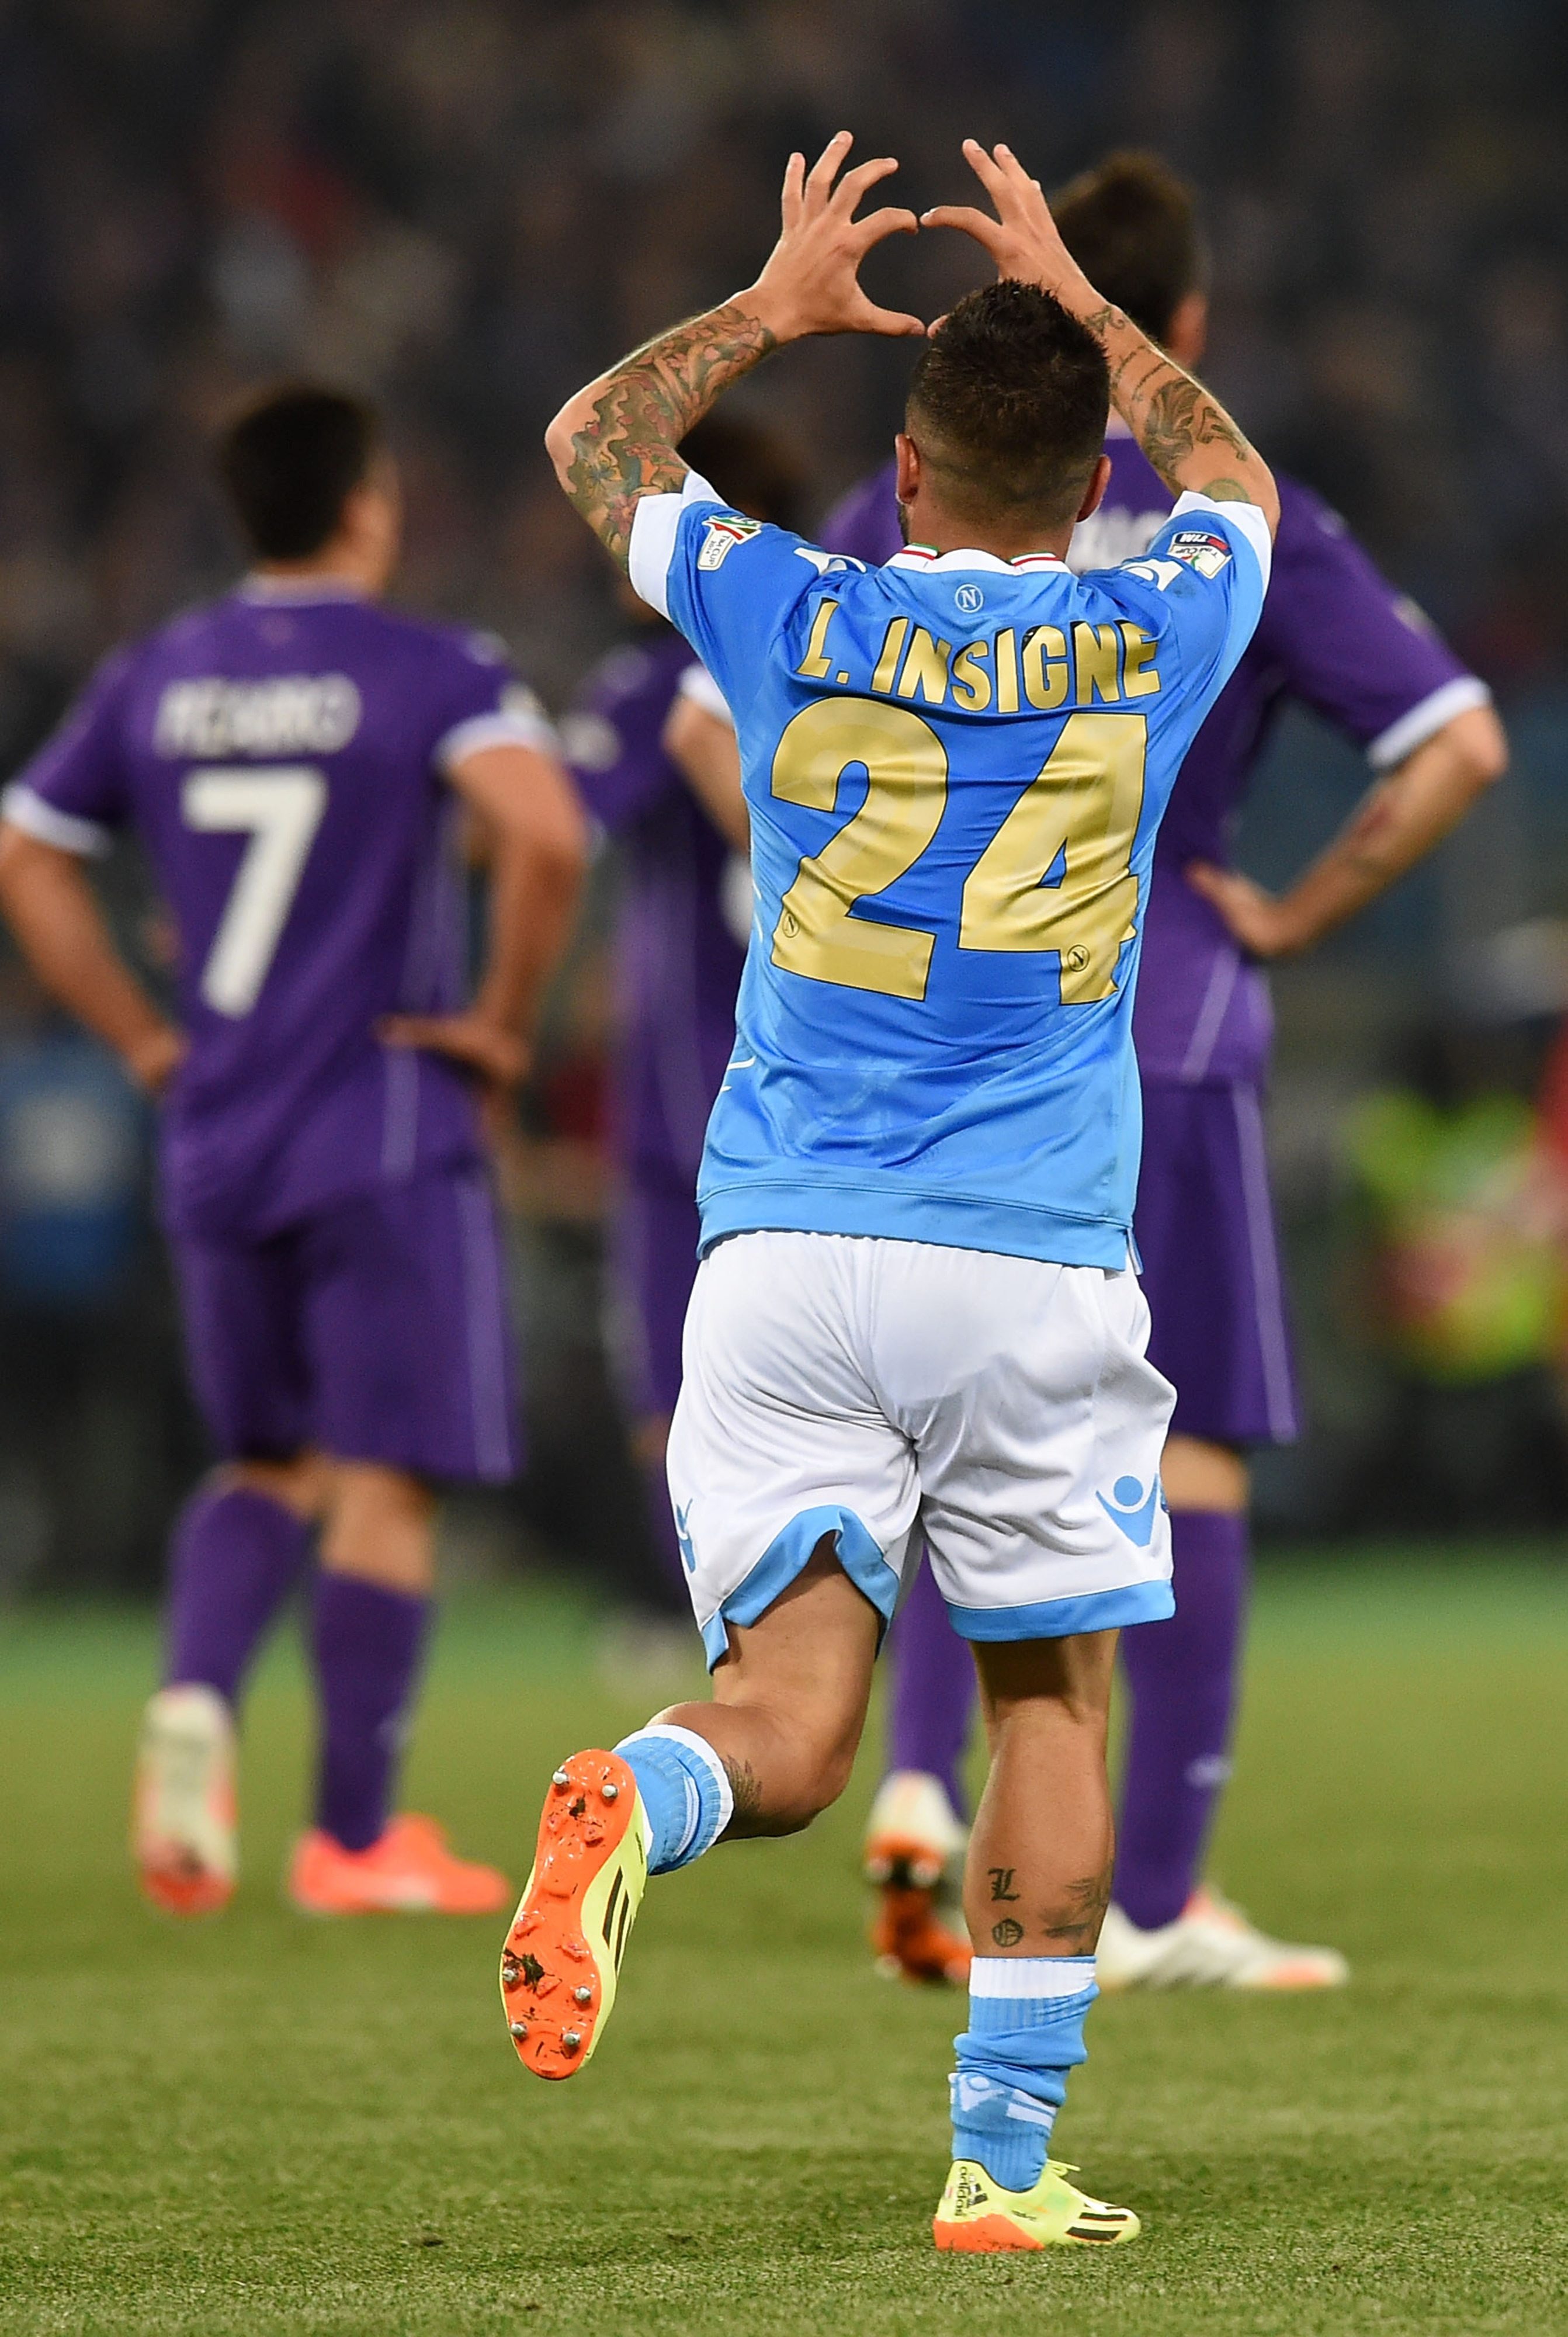 Fiorentina vs. Napoli: Time, TV schedule and how to watch online